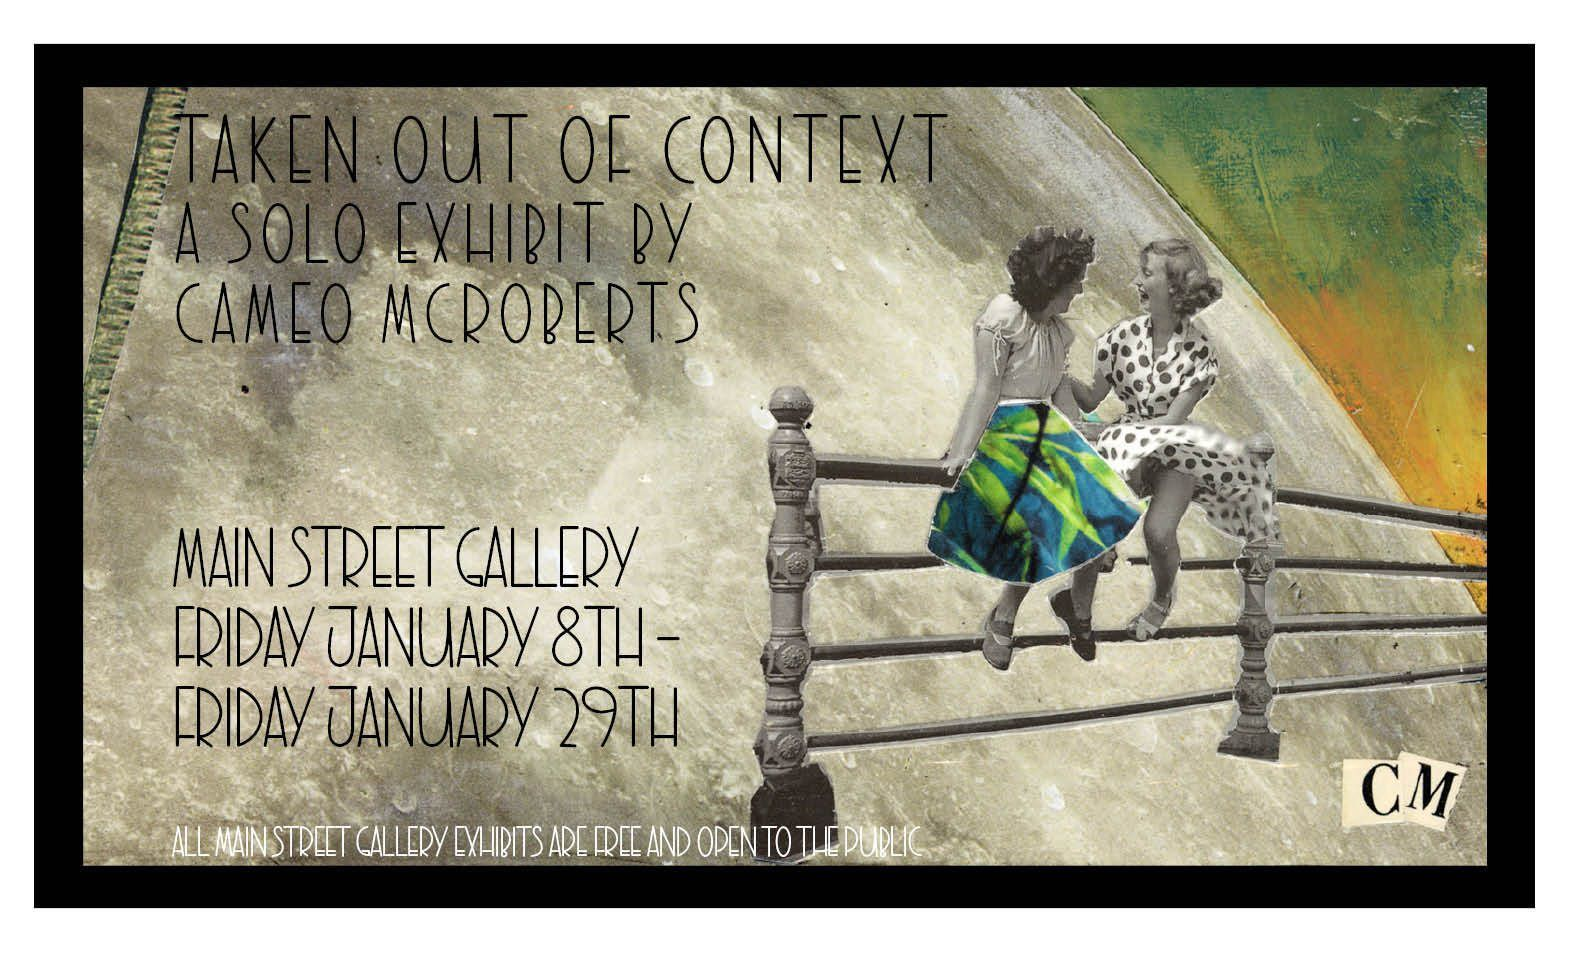 """Taken Out of Context"" a solo exhibit by Cameo McRoberts"